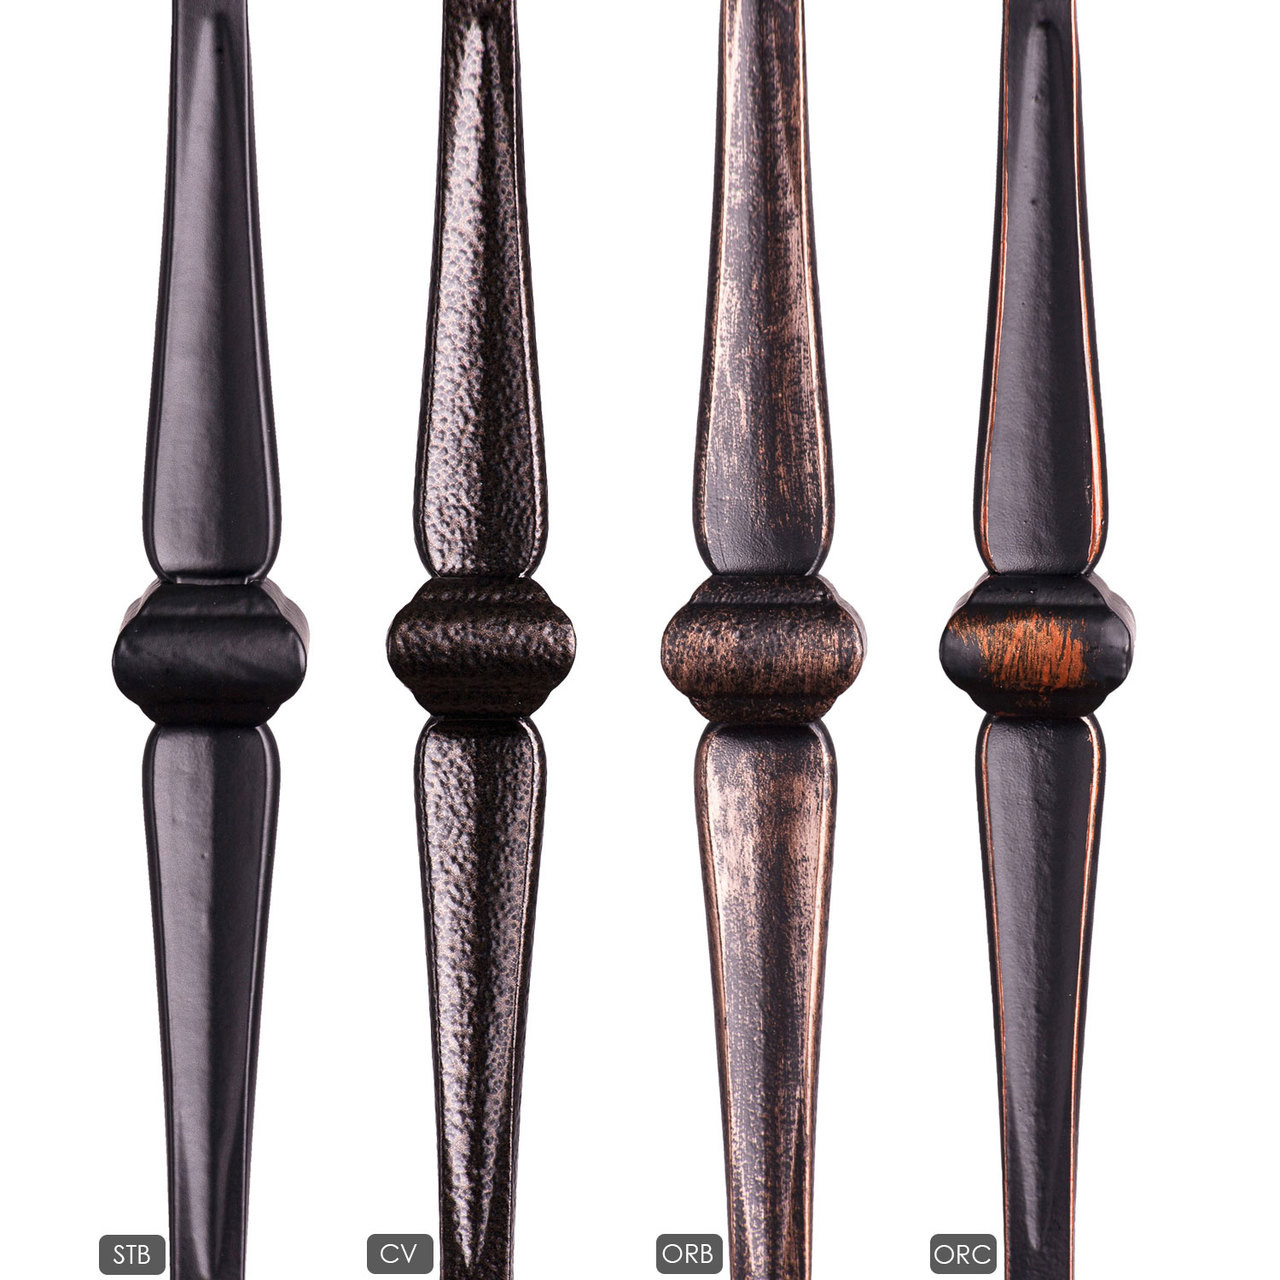 HF16.5.2 Single Knuckle Gothic Hammered Iron Baluster